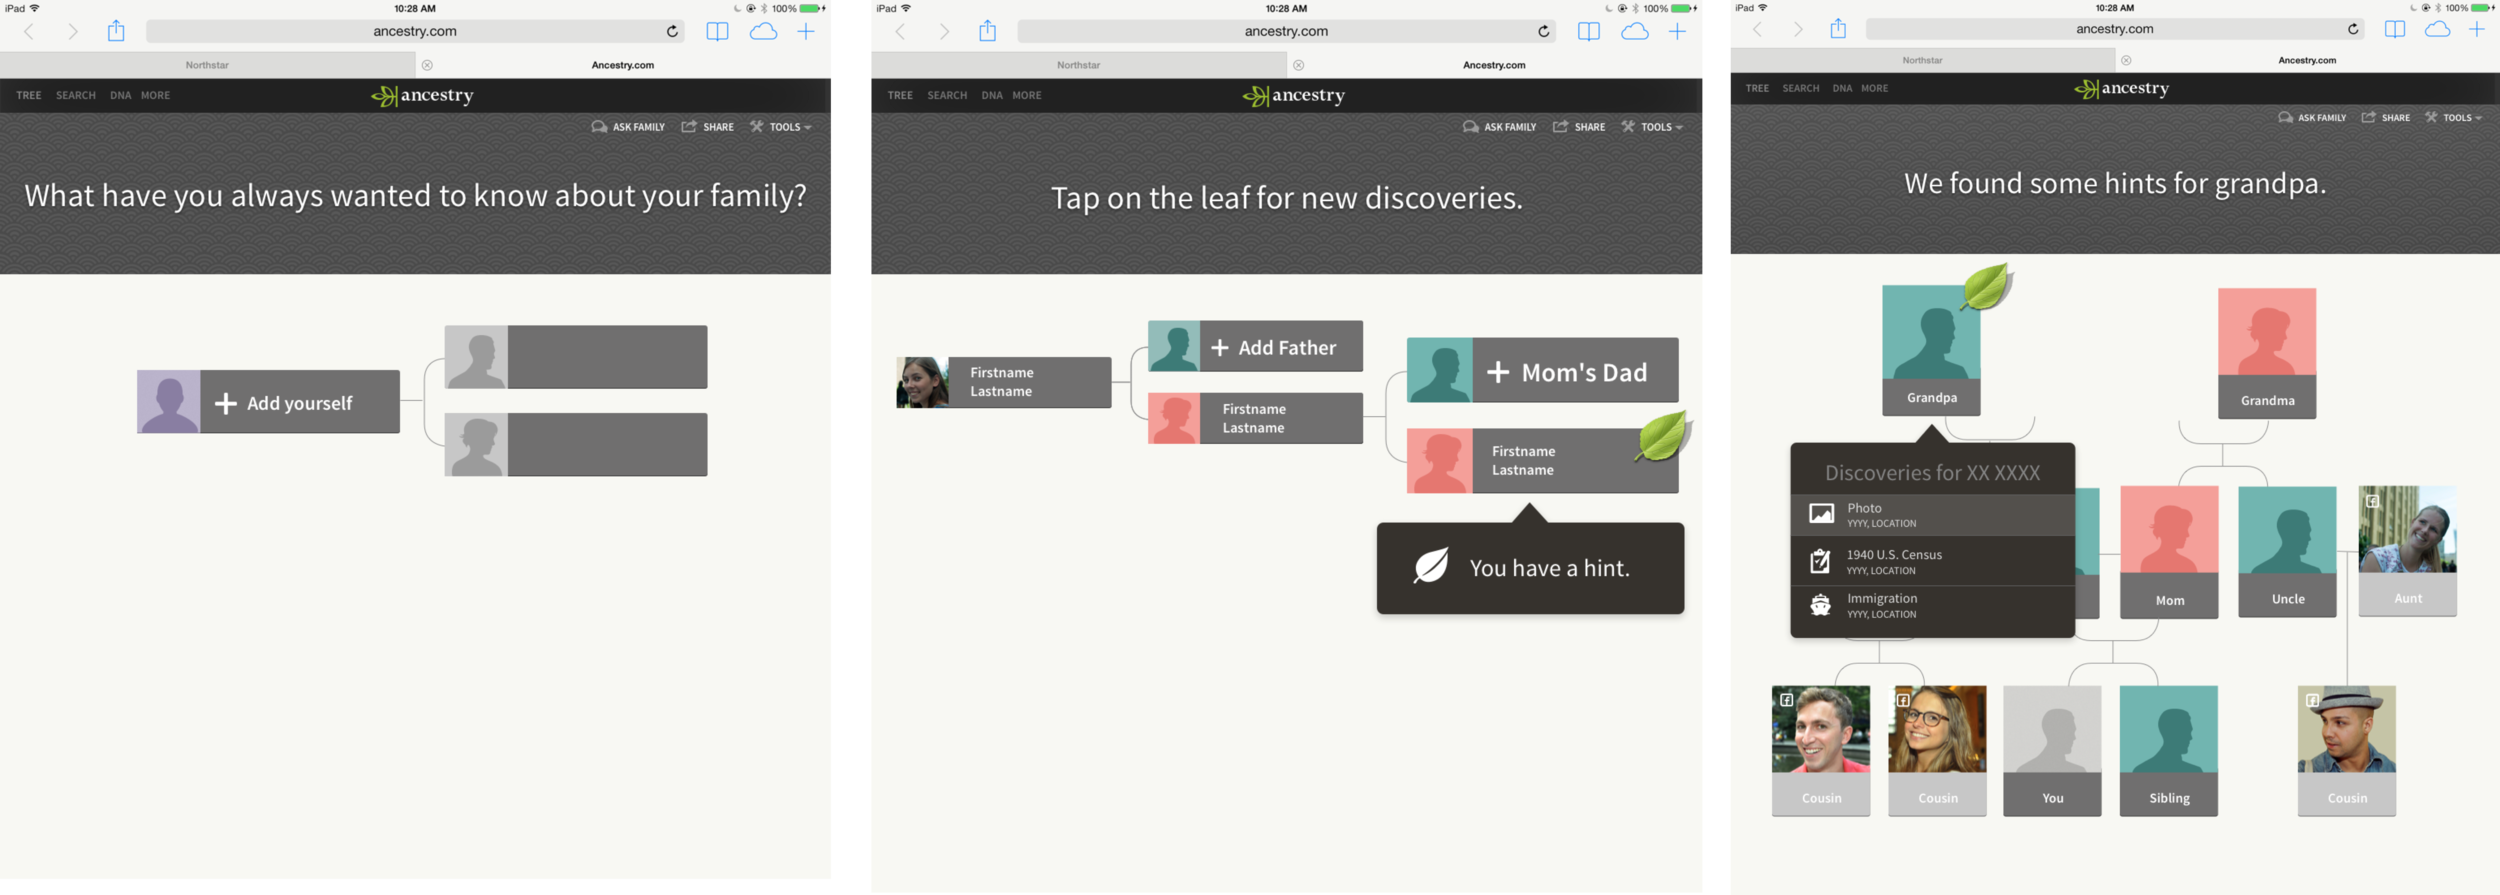 desktop - Iterated on different ways to explore family trees and offer in-context guidance.